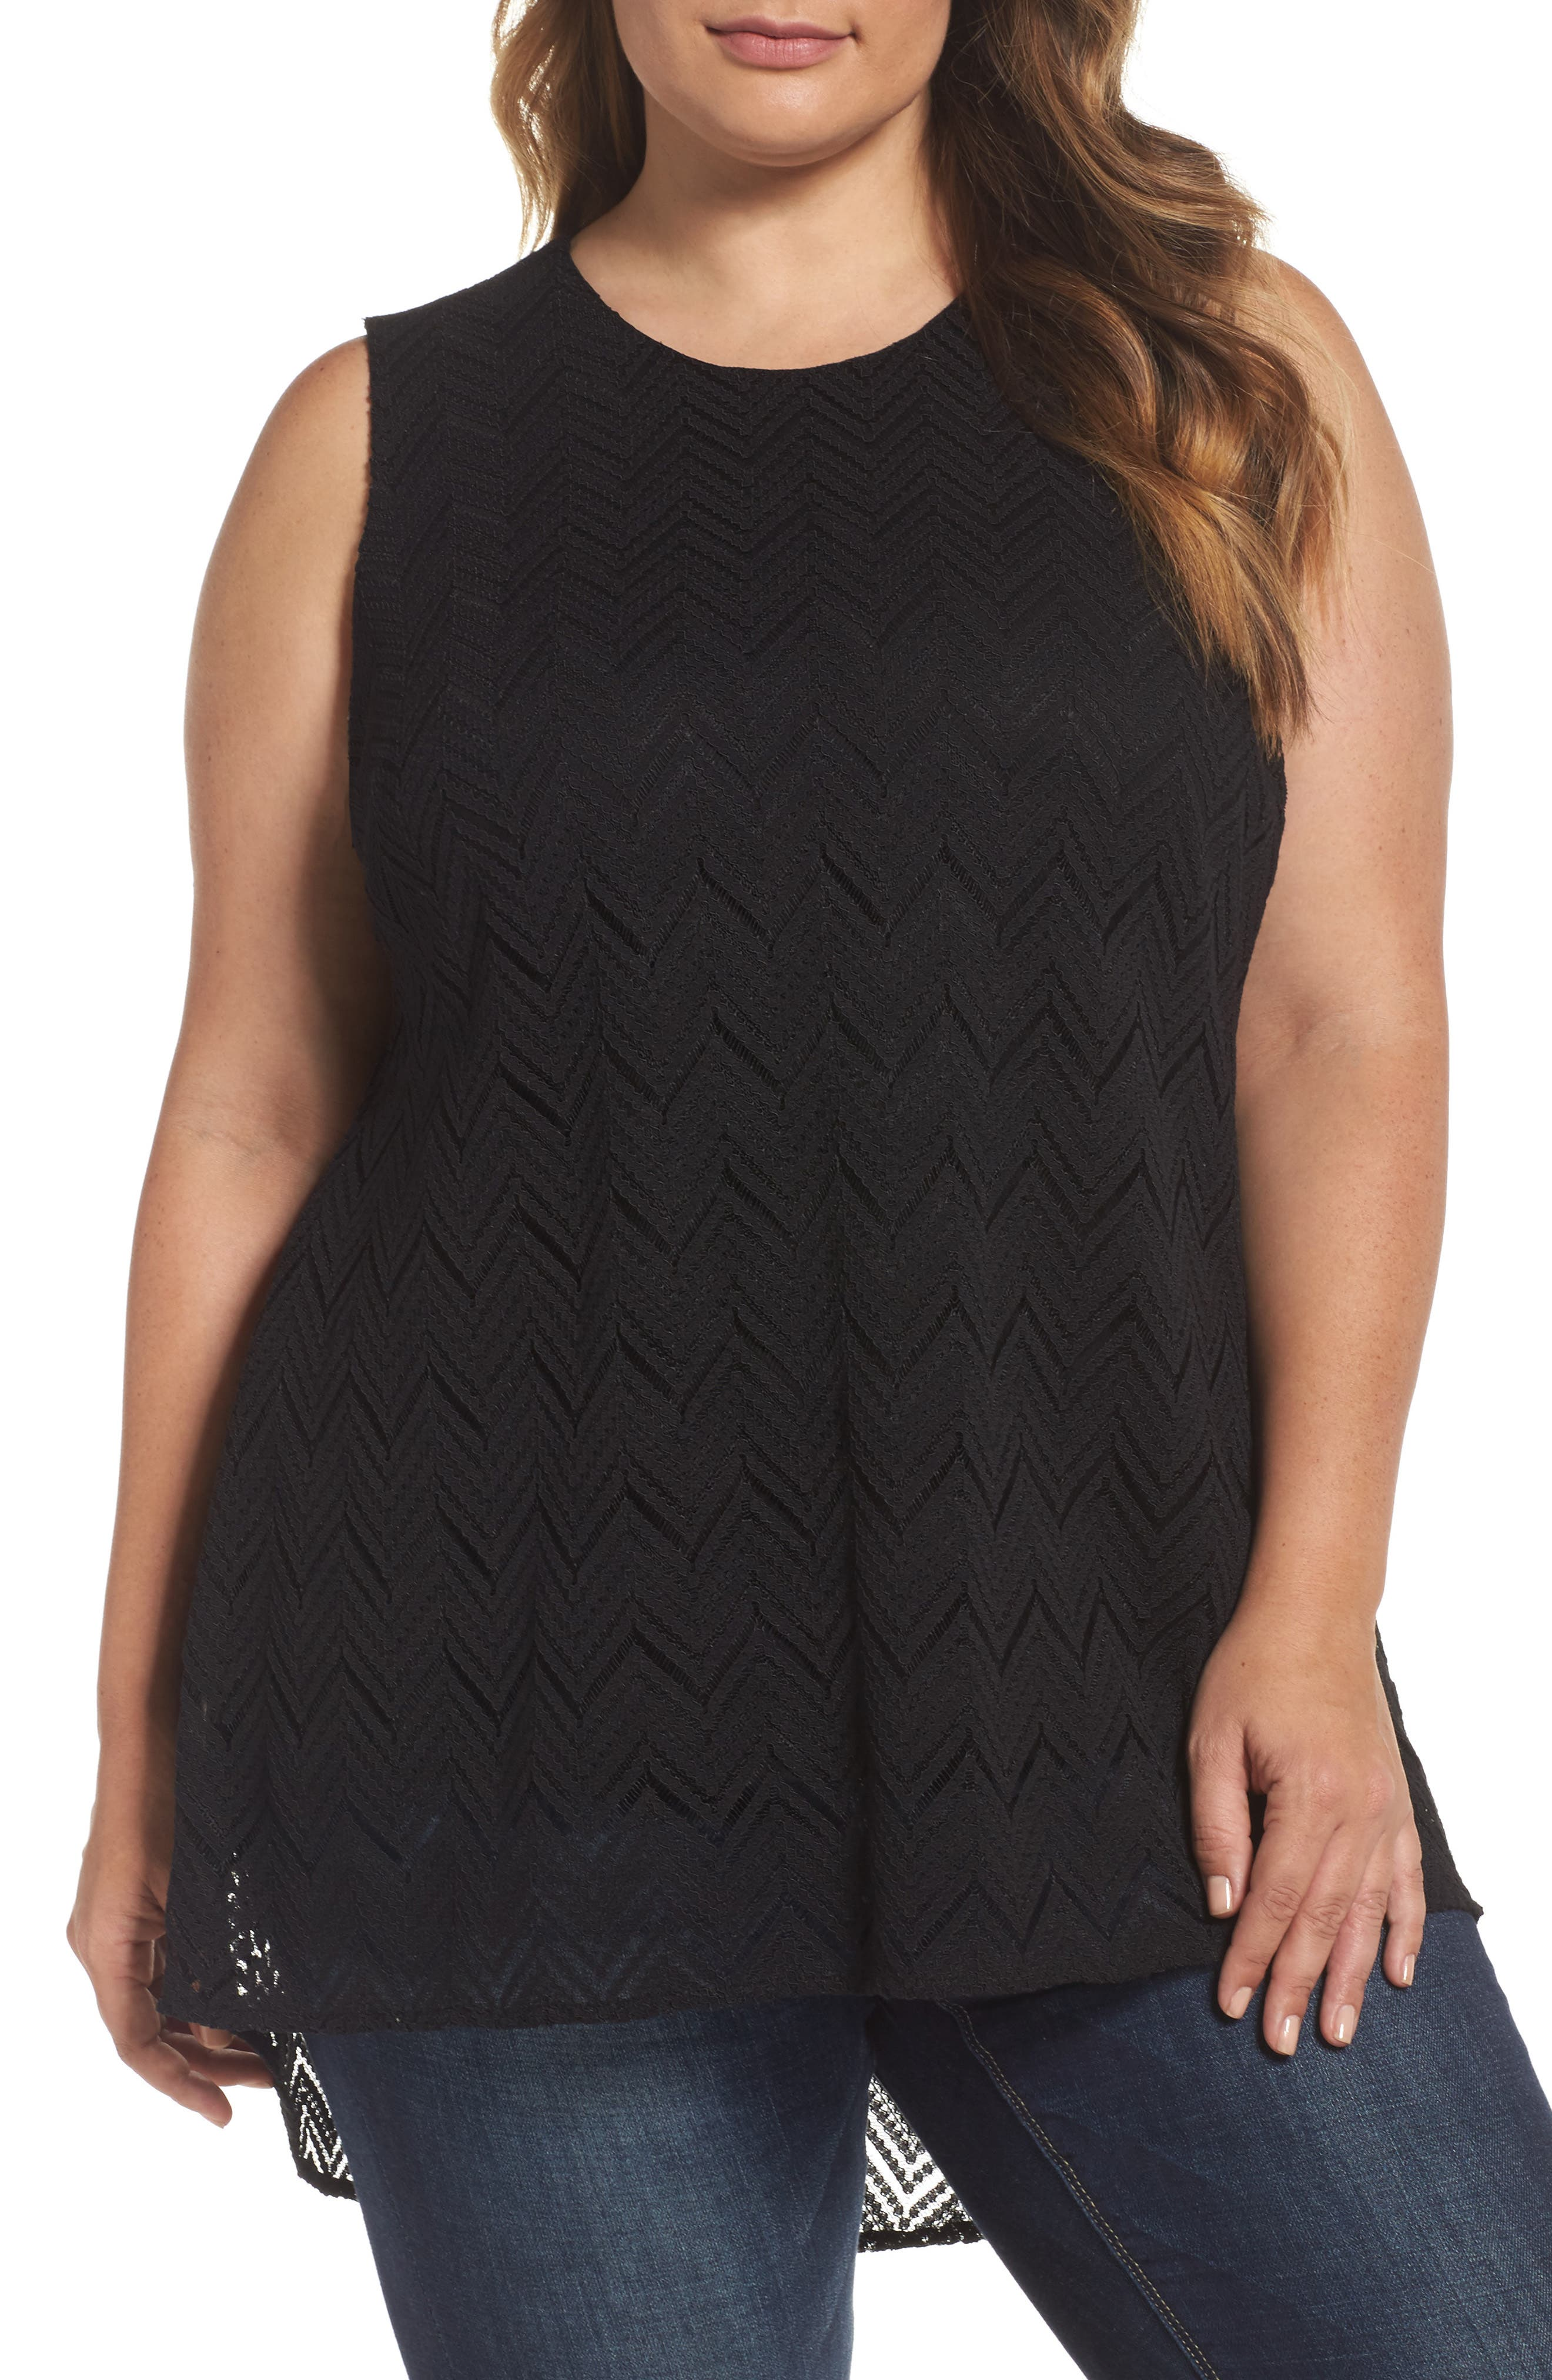 Vince Camuto Herringbone Lace High/Low Top (Plus Size)